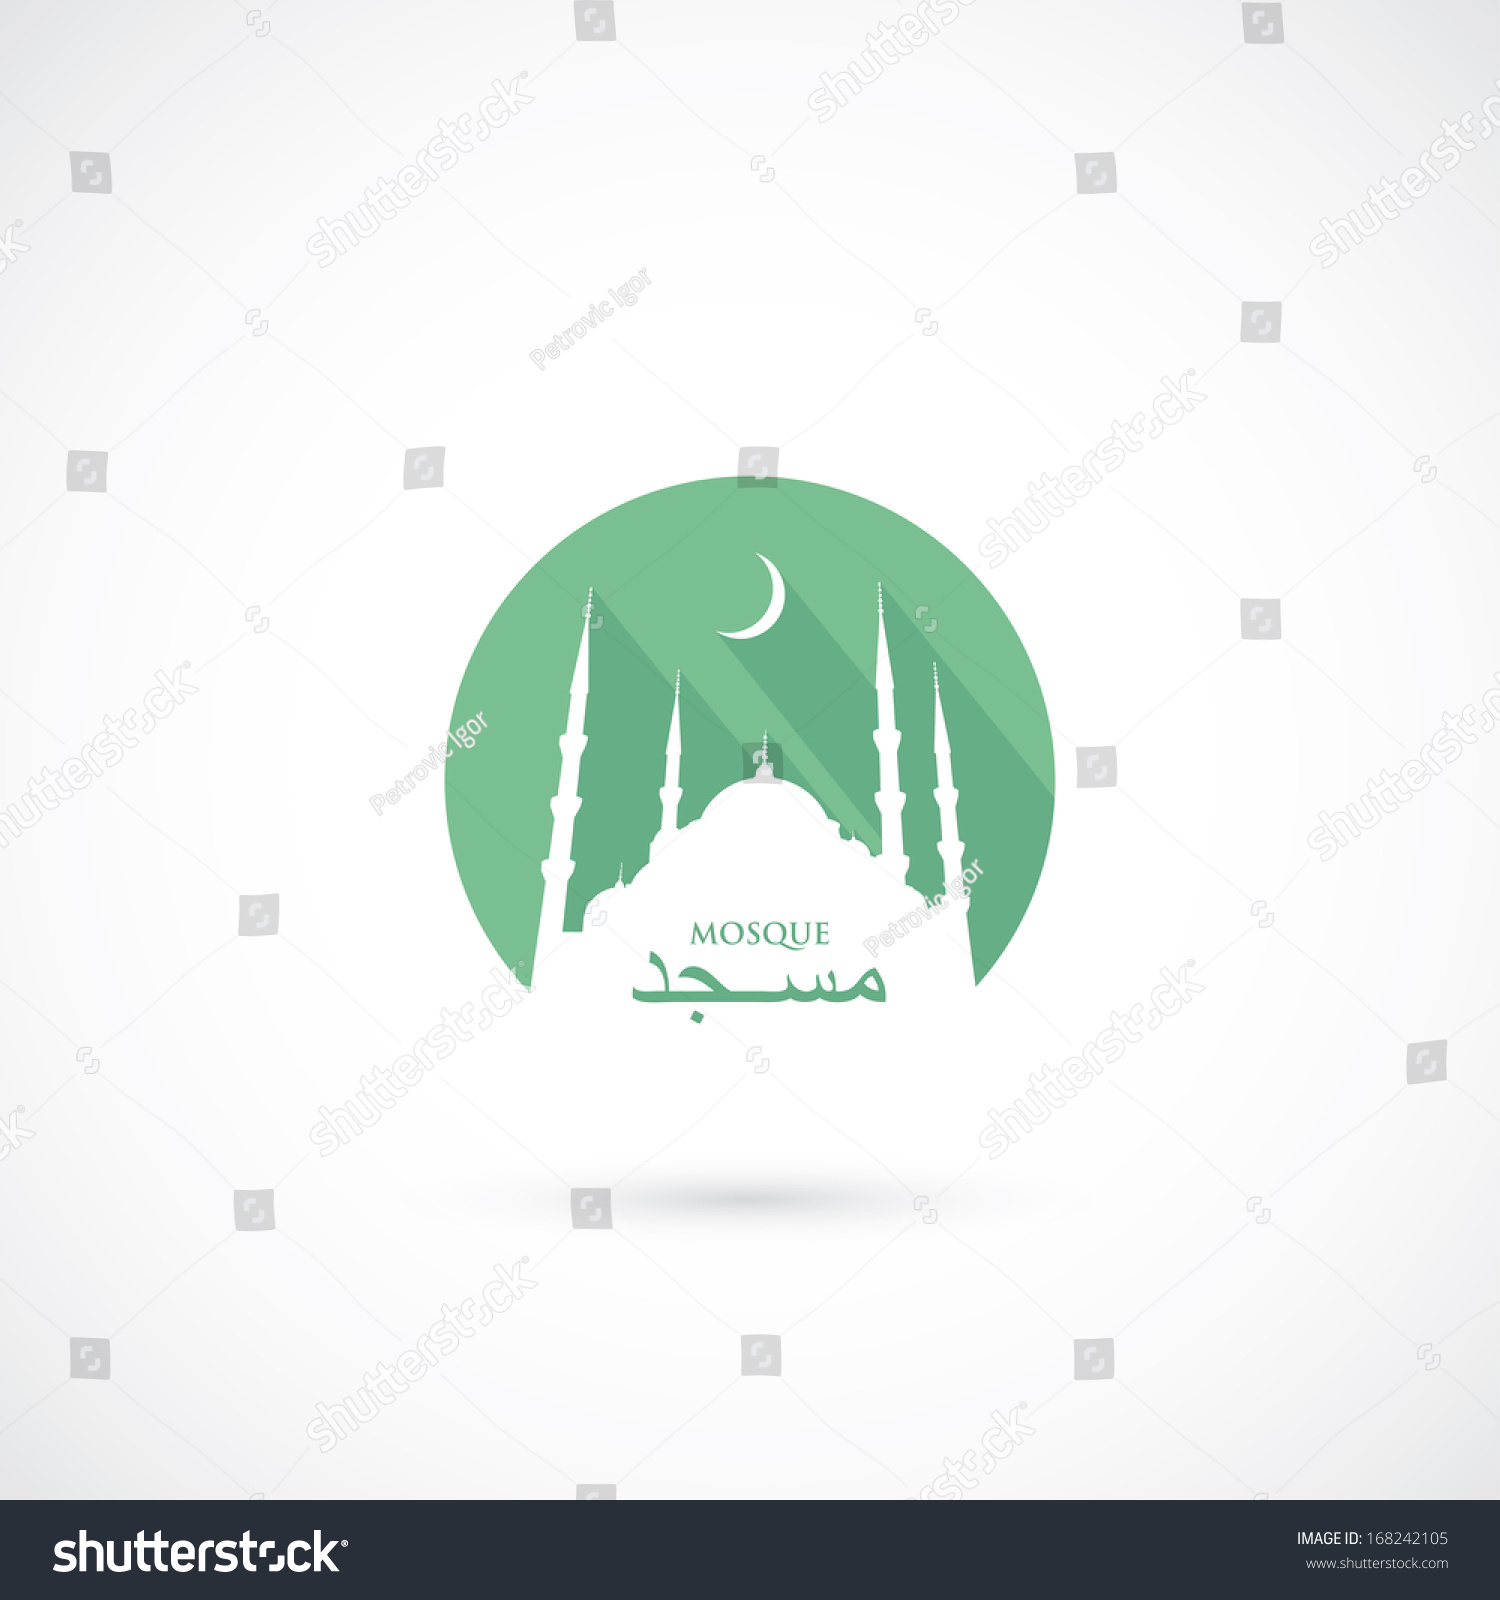 Mosque symbol image contains arabic word stock vector 168242105 mosque symbol image contains arabic word meaning mosque vector illustration buycottarizona Image collections